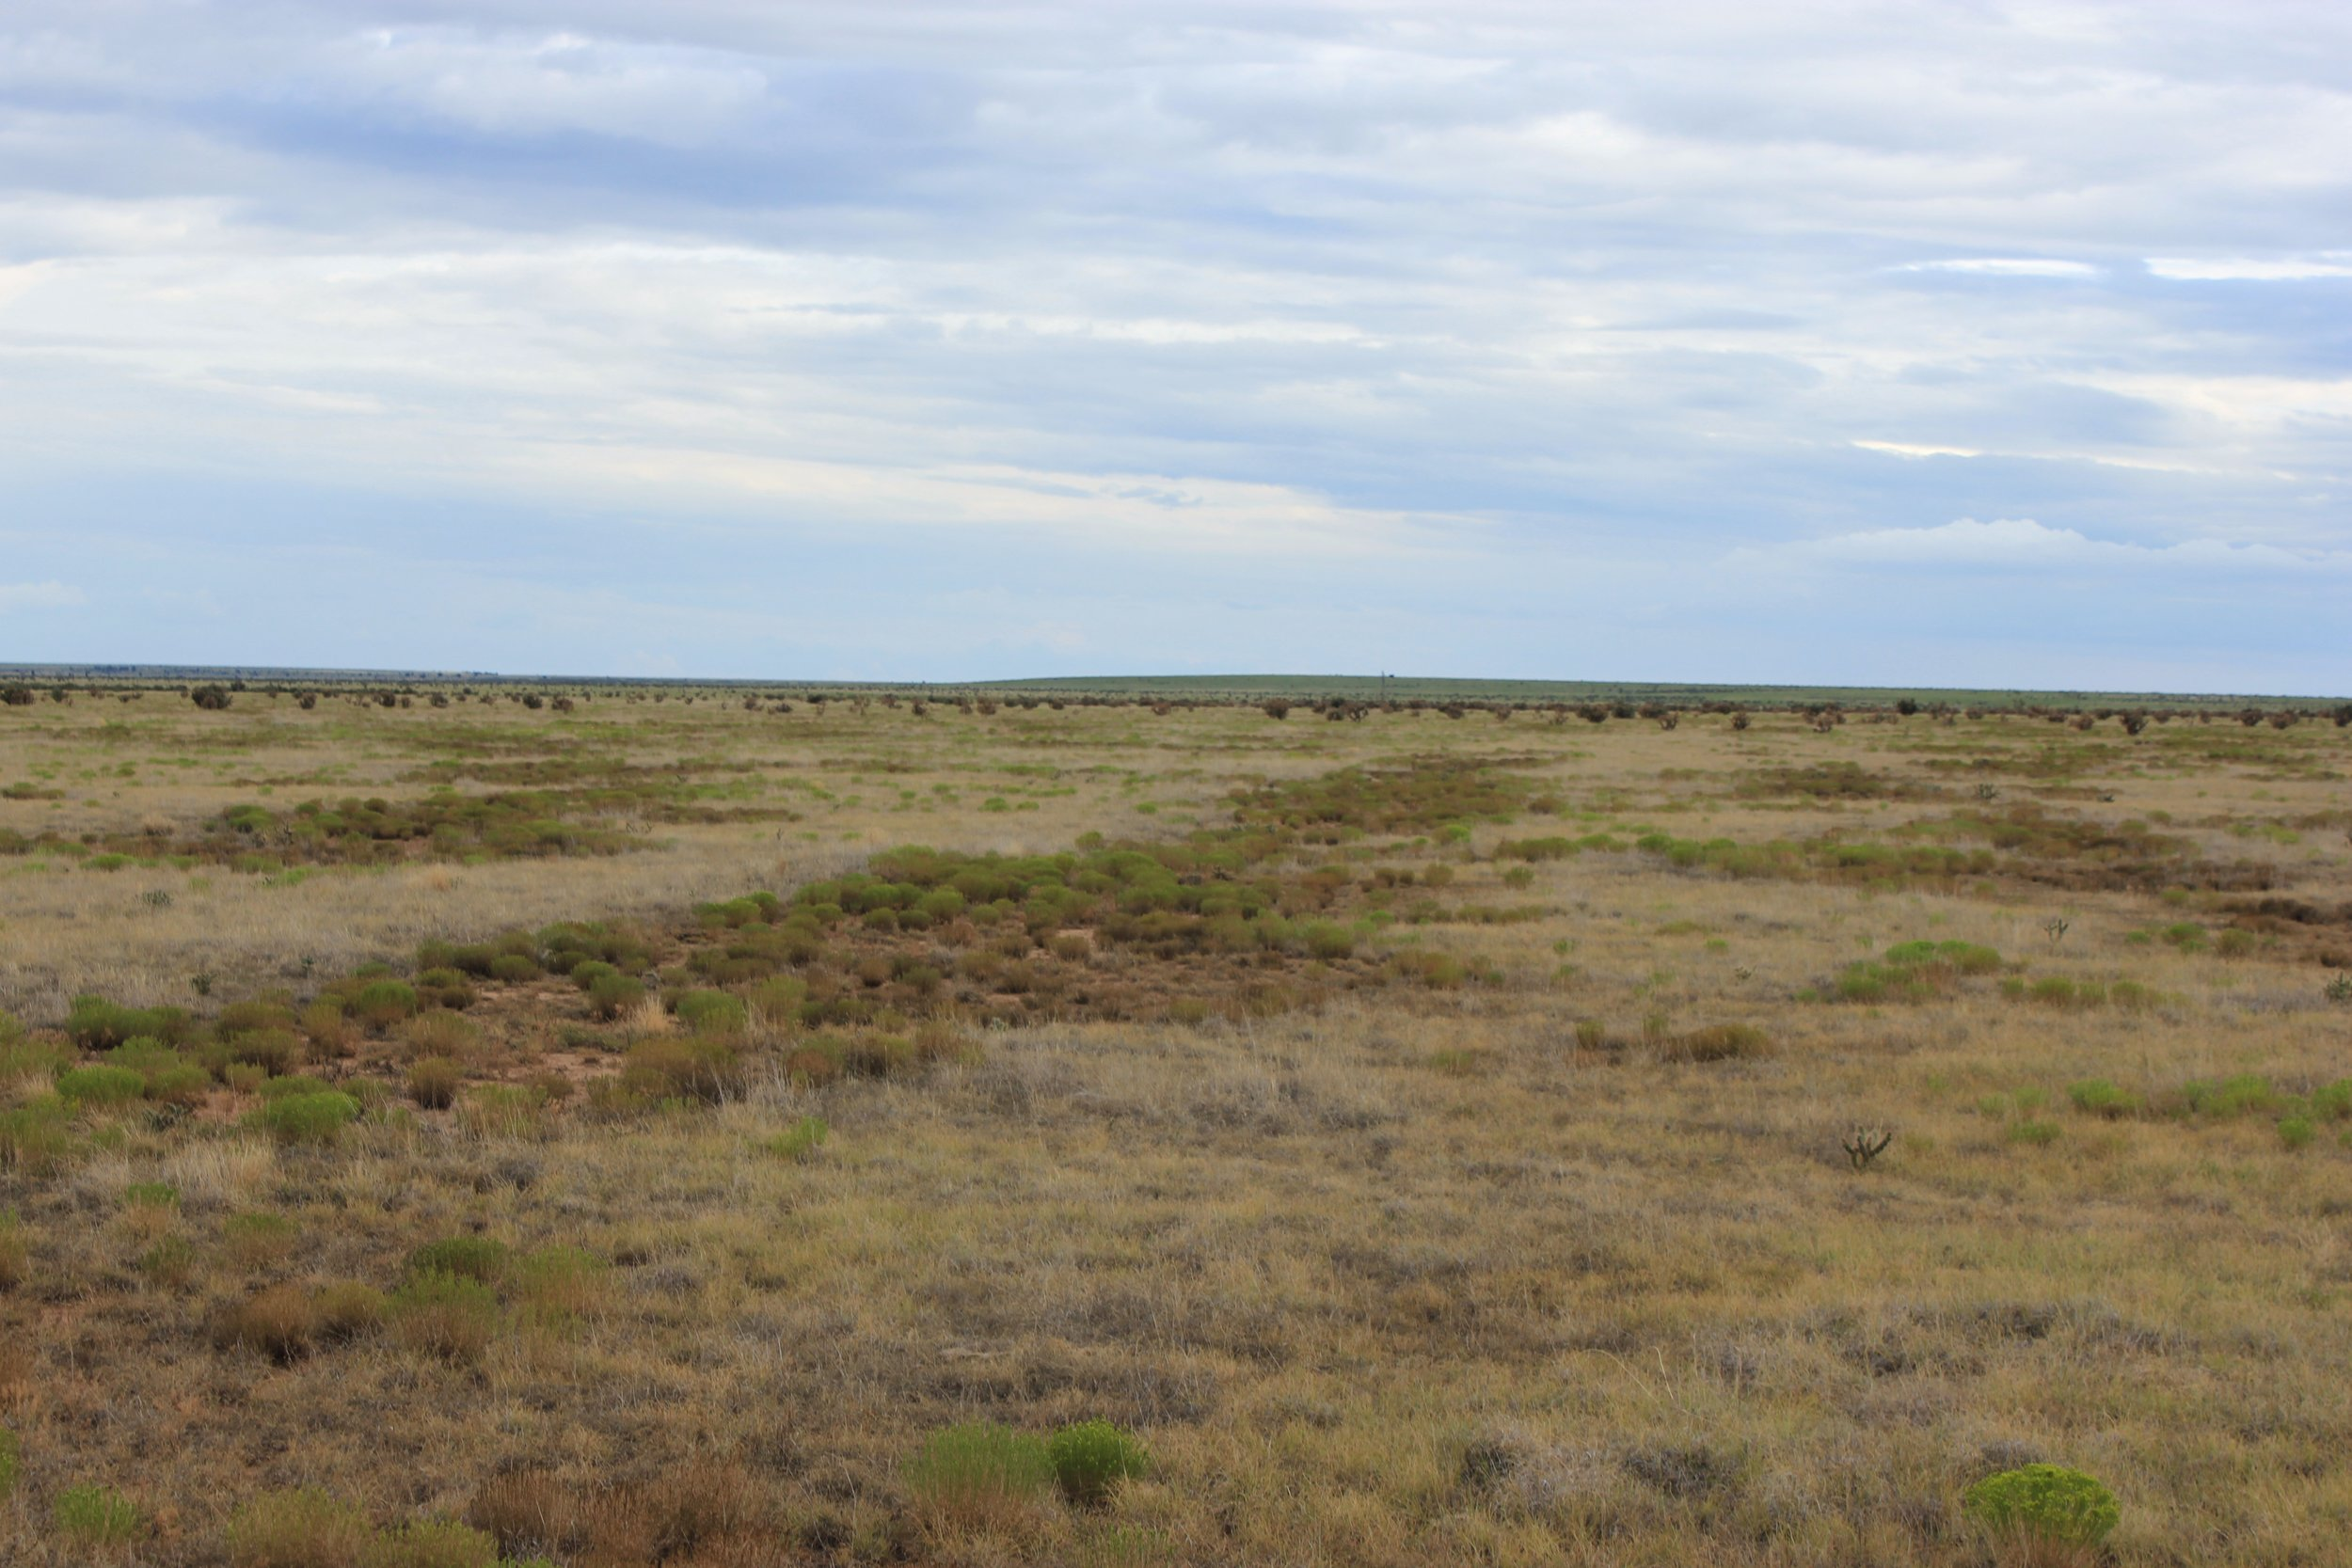 FIGURE 10. SNAKEWEED INVASION IN DISTURBED AREAS 5 YEARS AFTER REMOVAL OF CHOLLA WITH A MULCHER.